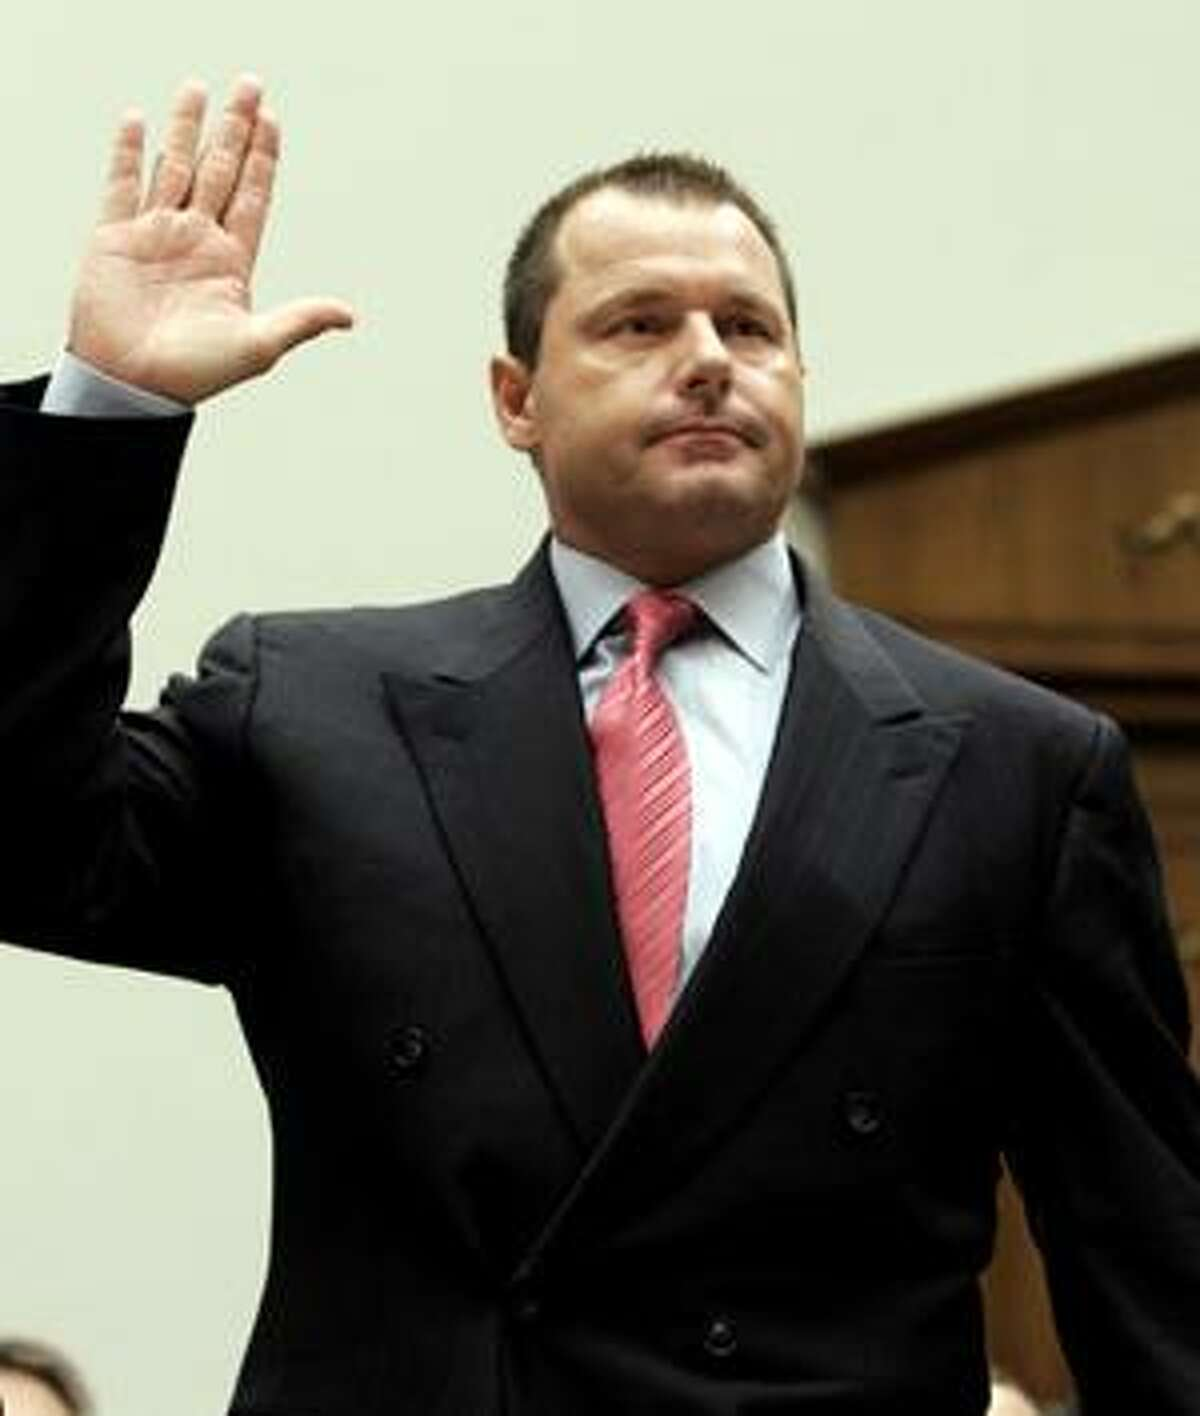 FILE - This Feb. 13, 2008, file photo shows former New York Yankees baseball pitcher Roger Clemens being sworn-in on Capitol Hill in Washington, prior to testifying before the House Oversight, and Government Reform committee hearing on drug use in baseball. The New York Times reported on its website Thursday, Aug. 19, 2010, that federal authorities have decided to indict Roger Clemens on charges of making false statements to Congress about his use of performance-enhancing drugs. (AP Photo/Susan Walsh, File)